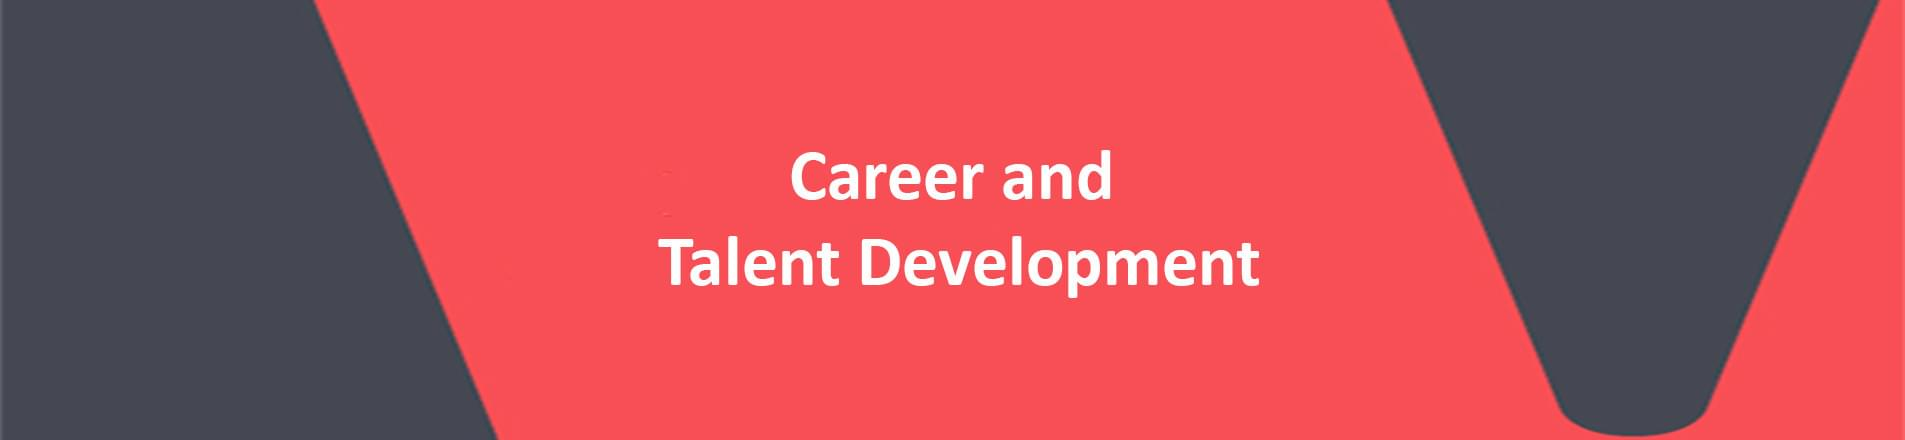 Image of the words career and talent development on a white background